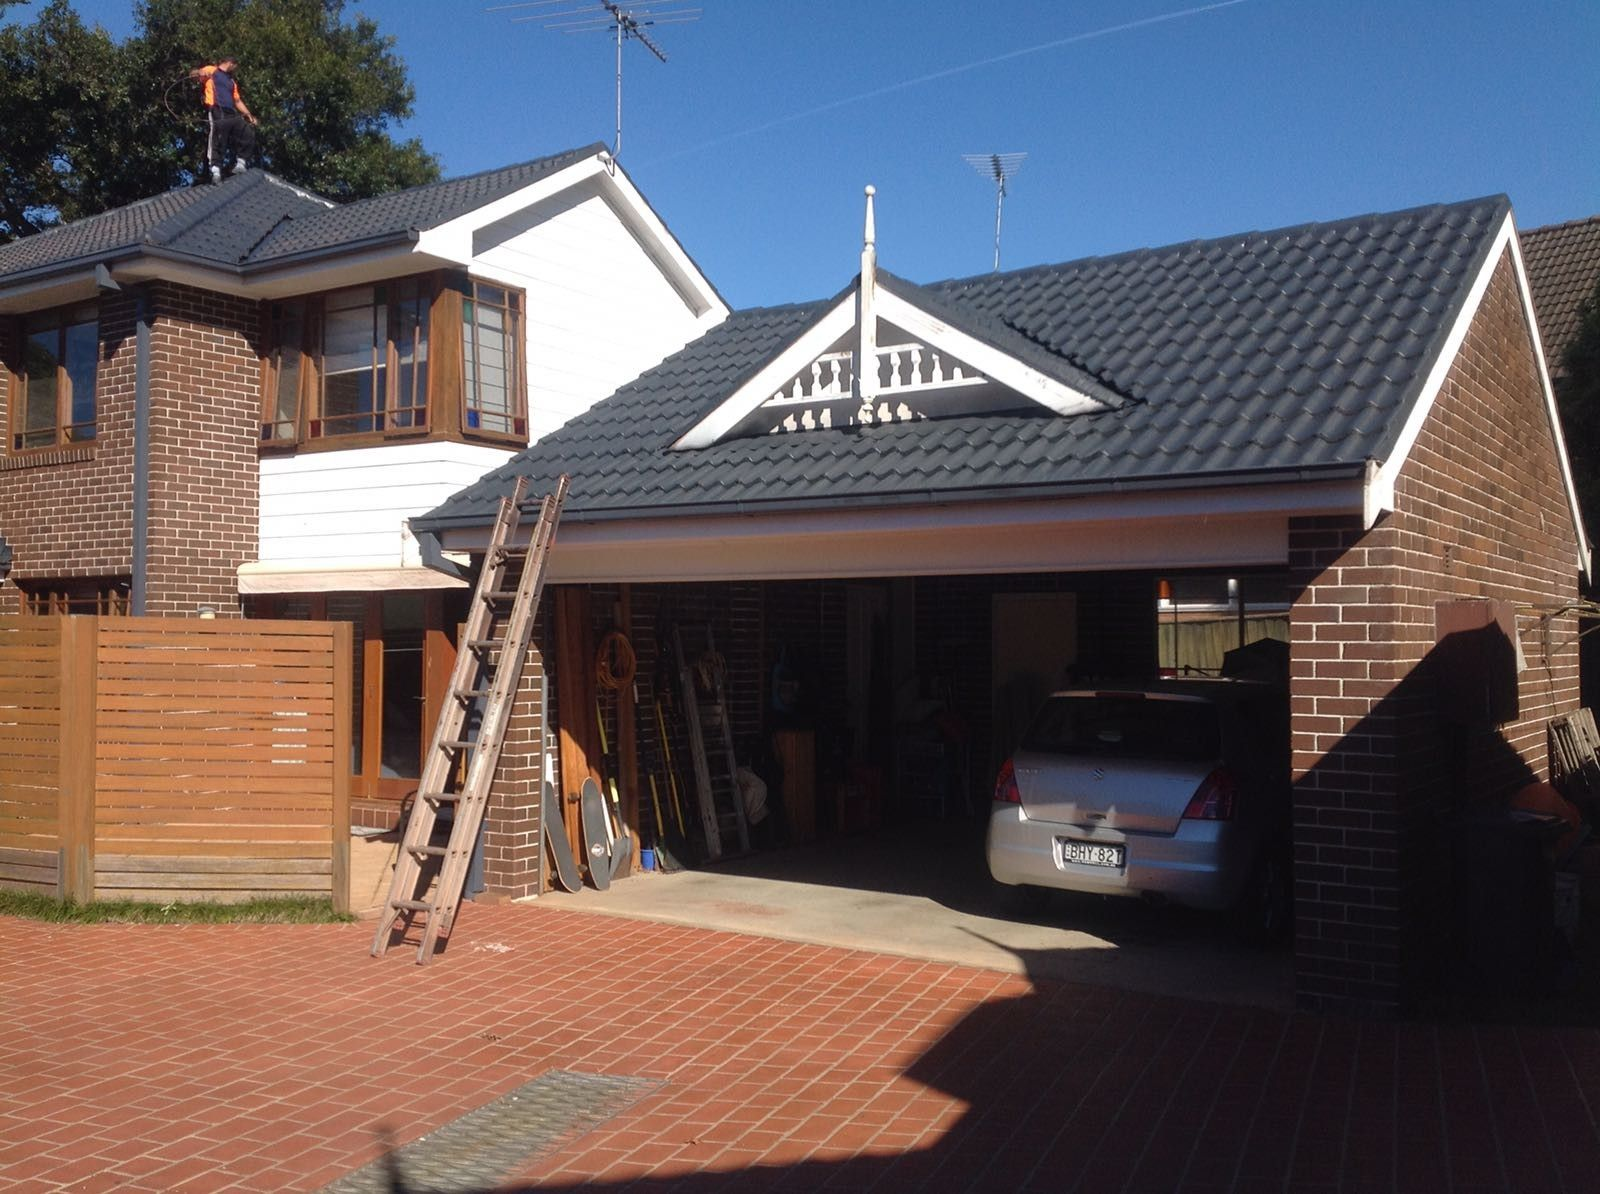 Roof Restoration In Sydney In 2020 Roof Restoration Roof Repair Roof Cleaning